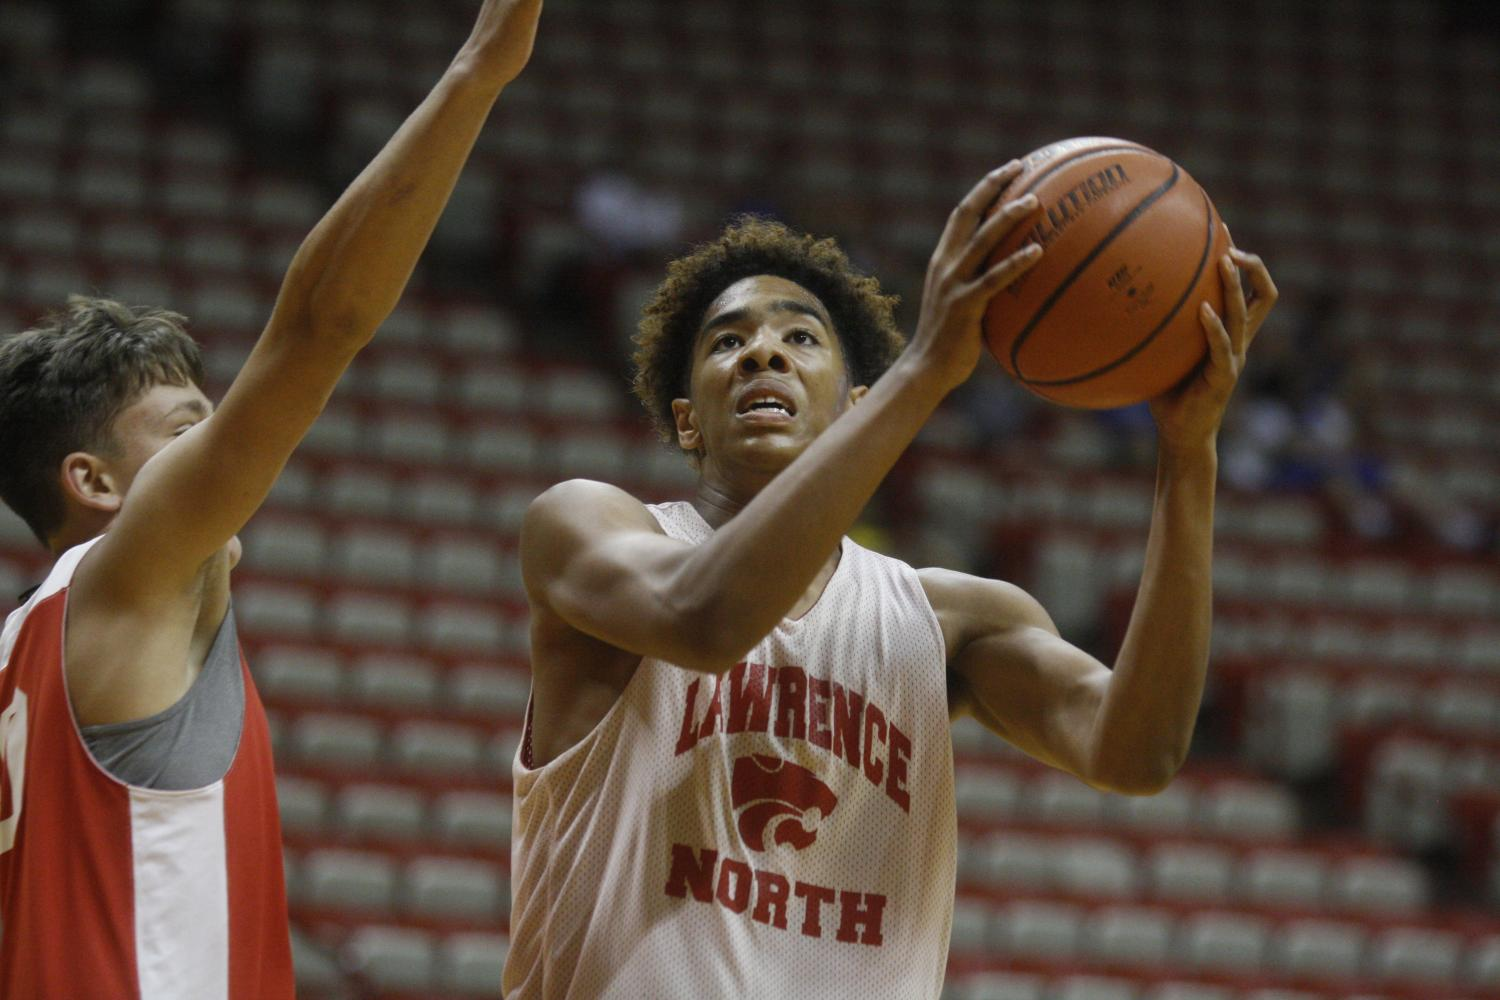 Easley, Hankins lead fast paced offense at IU Team Camp